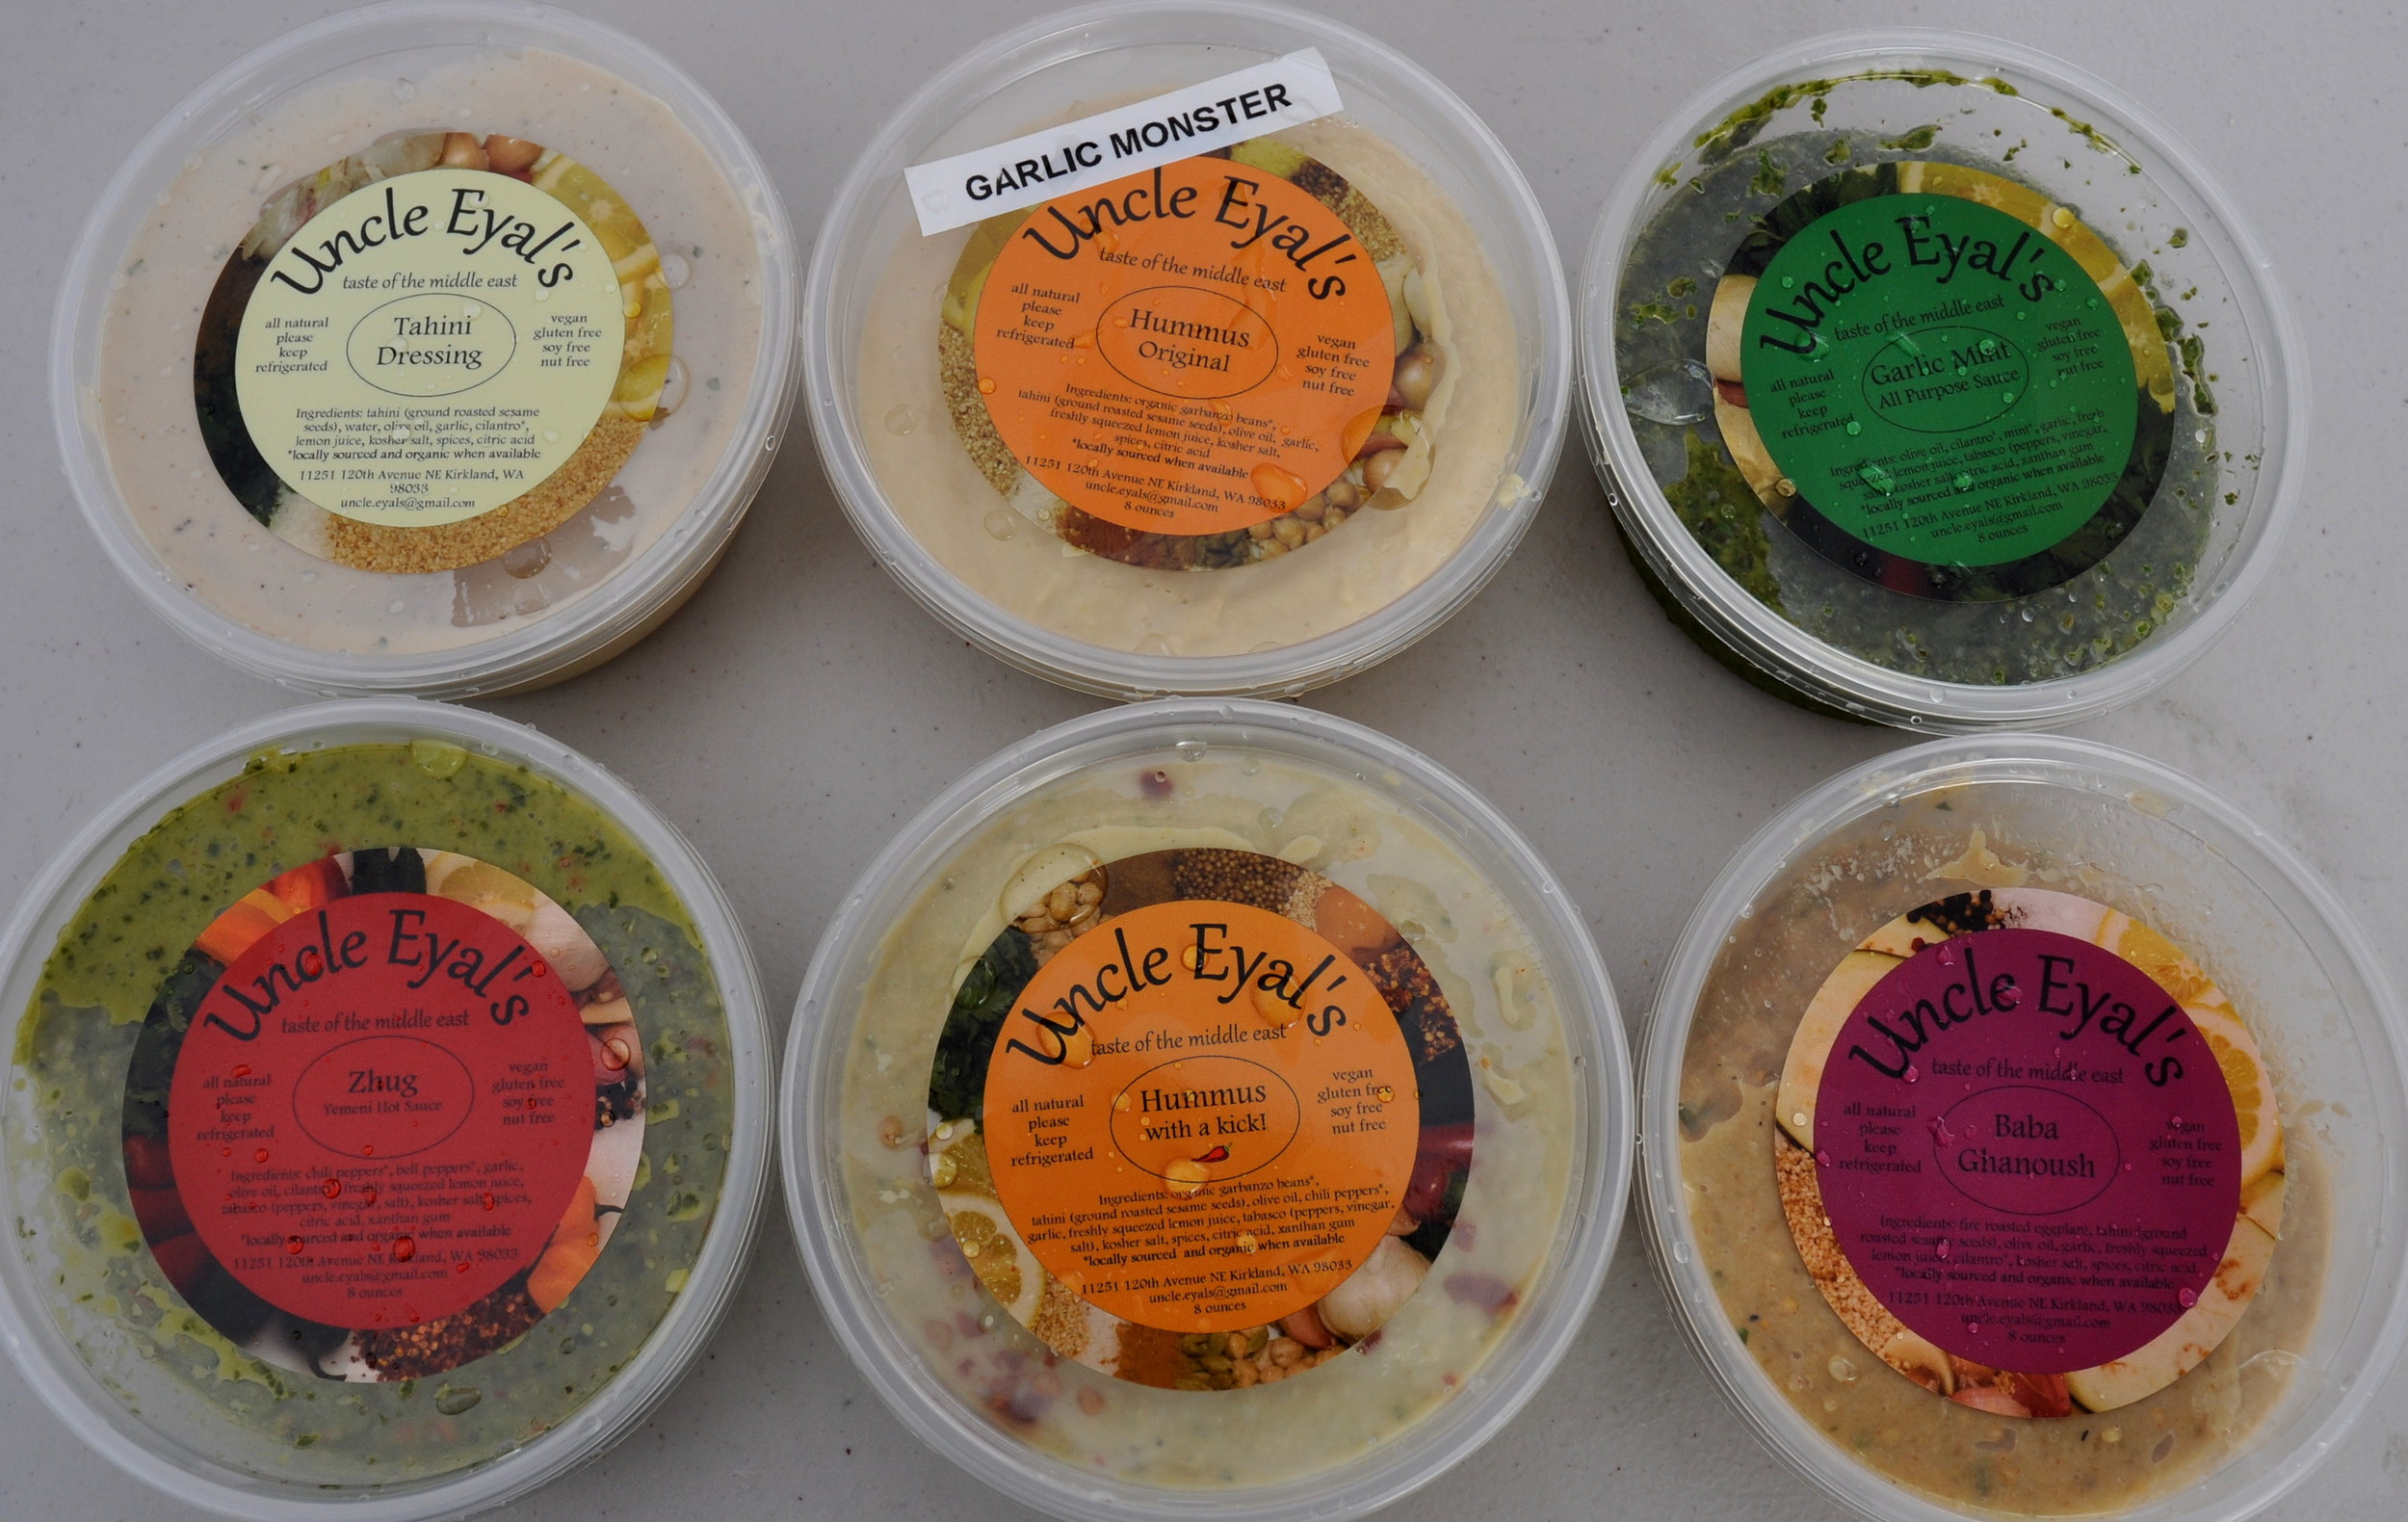 Mediterranean-style dips and sauces from Uncle Eyals. Photo copyright 2013 by Zachary D. Lyons.